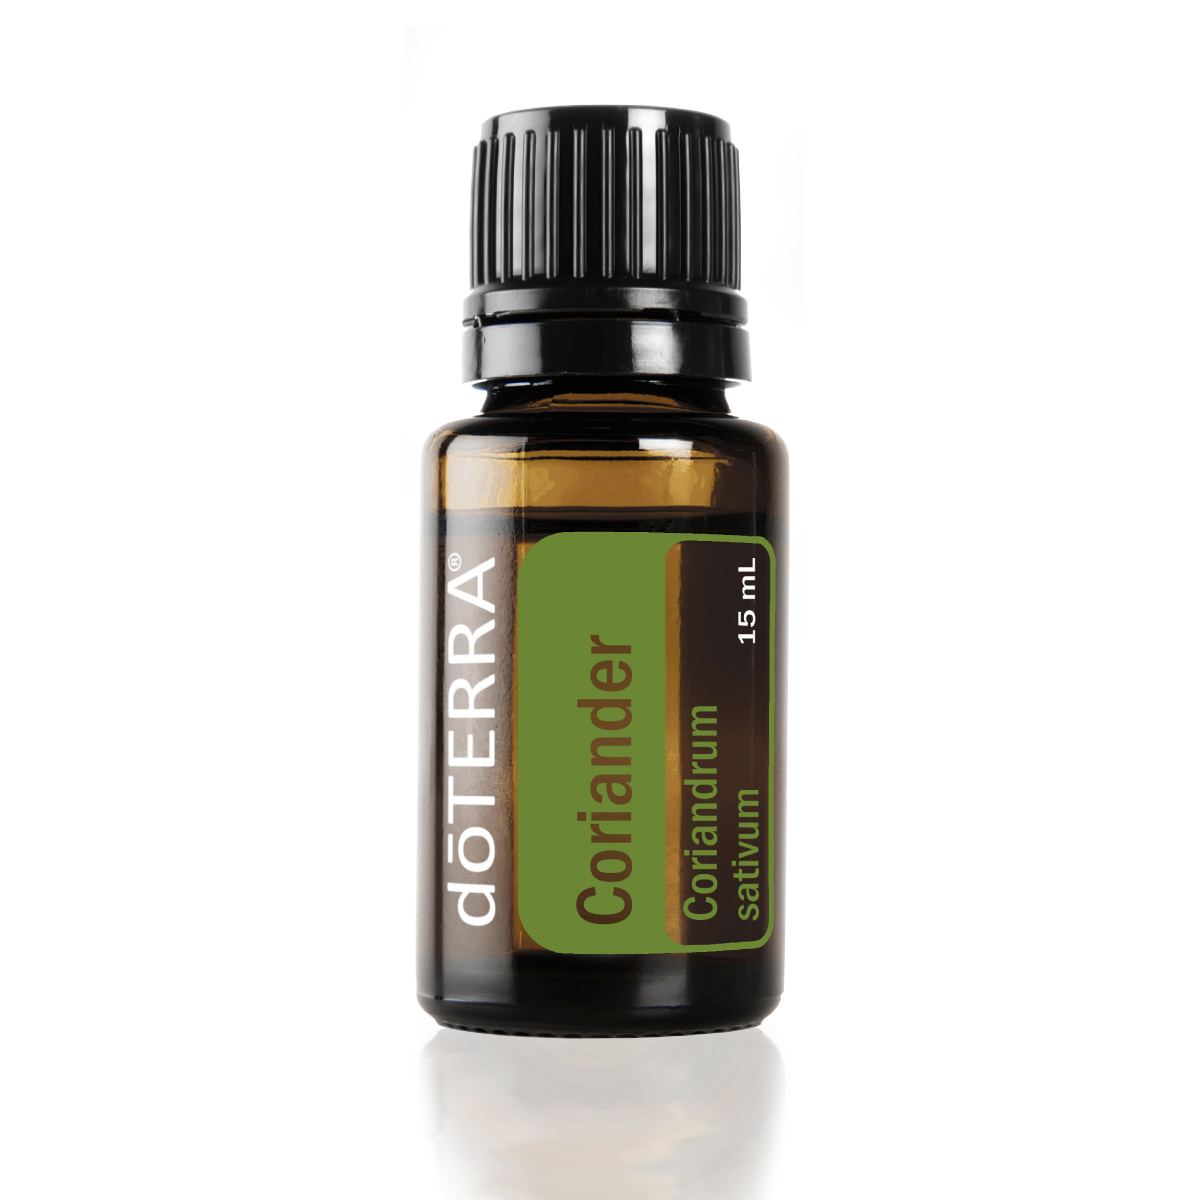 Bottle of doTERRA Coriander essential oil. What are the benefits of Coriander oil? People use Coriander essential oil to aid in digestion, promote a clear complexion, and boost mood.